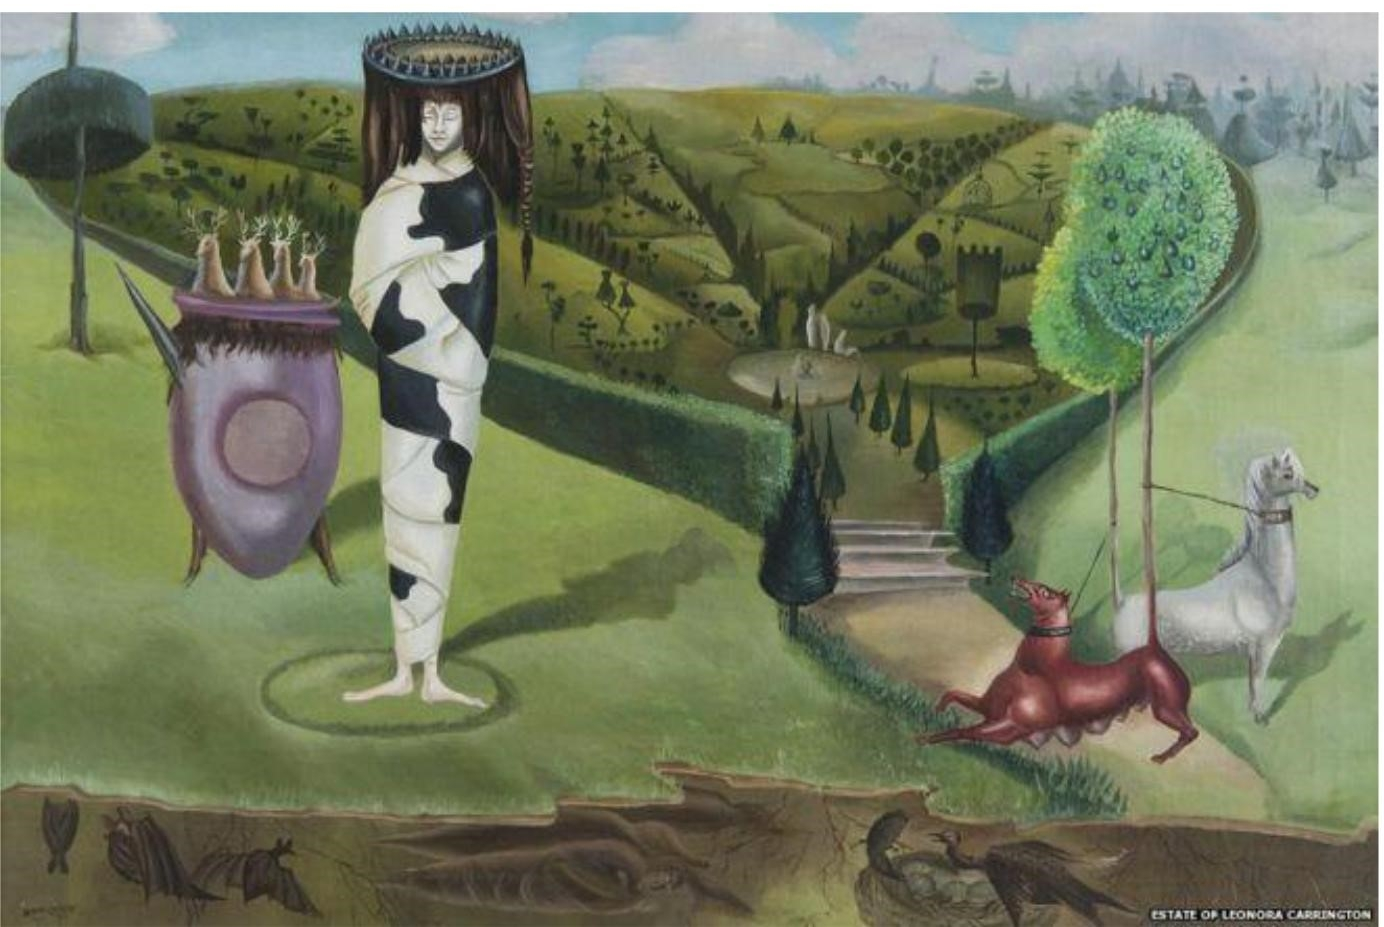 """""""Mexico City in the mid-20th Century was an extremely creative and experimental climate, affording her opportunities to experiment in tapestry-making, writing, design for theatre and film, and collaborations with photographers,"""" says Ms Barnes.  The artist's move, she added, represented an even greater 'awakening' than her first exposure to surrealism in London and the traditions and culture of Mexico chimed with the themes surrealists were already exploring - particularly those surrounding death and religion.  """"It's a place that the surrealist Andre Breton described as 'the surrealist place par excellence' and she was absolutely fascinated by its culture,"""" she says.  """"The belief of the co-presence of the living and the dead that you see in celebrations like the Day of the Dead and the multitude of beliefs that worked together like Catholicism and Christianity was [part] of her work.  """"She was someone who was hugely excited by Mexican history and culture and the way she explored it and reflected it in her work went down well in Mexico.""""  Carrington was part of a group of predominantly Mexican artists commissioned to produce works to reflect the country's culture.  The result was that despite not being so well regarded in her home country, she virtually became a national treasure in her adopted country.  """"She was really seen as a Mexican artist,"""" adds Ms Barnes. """" She was commissioned to paint this incredible mural for Mexico's National Museum of Anthropology because she was really seen in that way."""""""